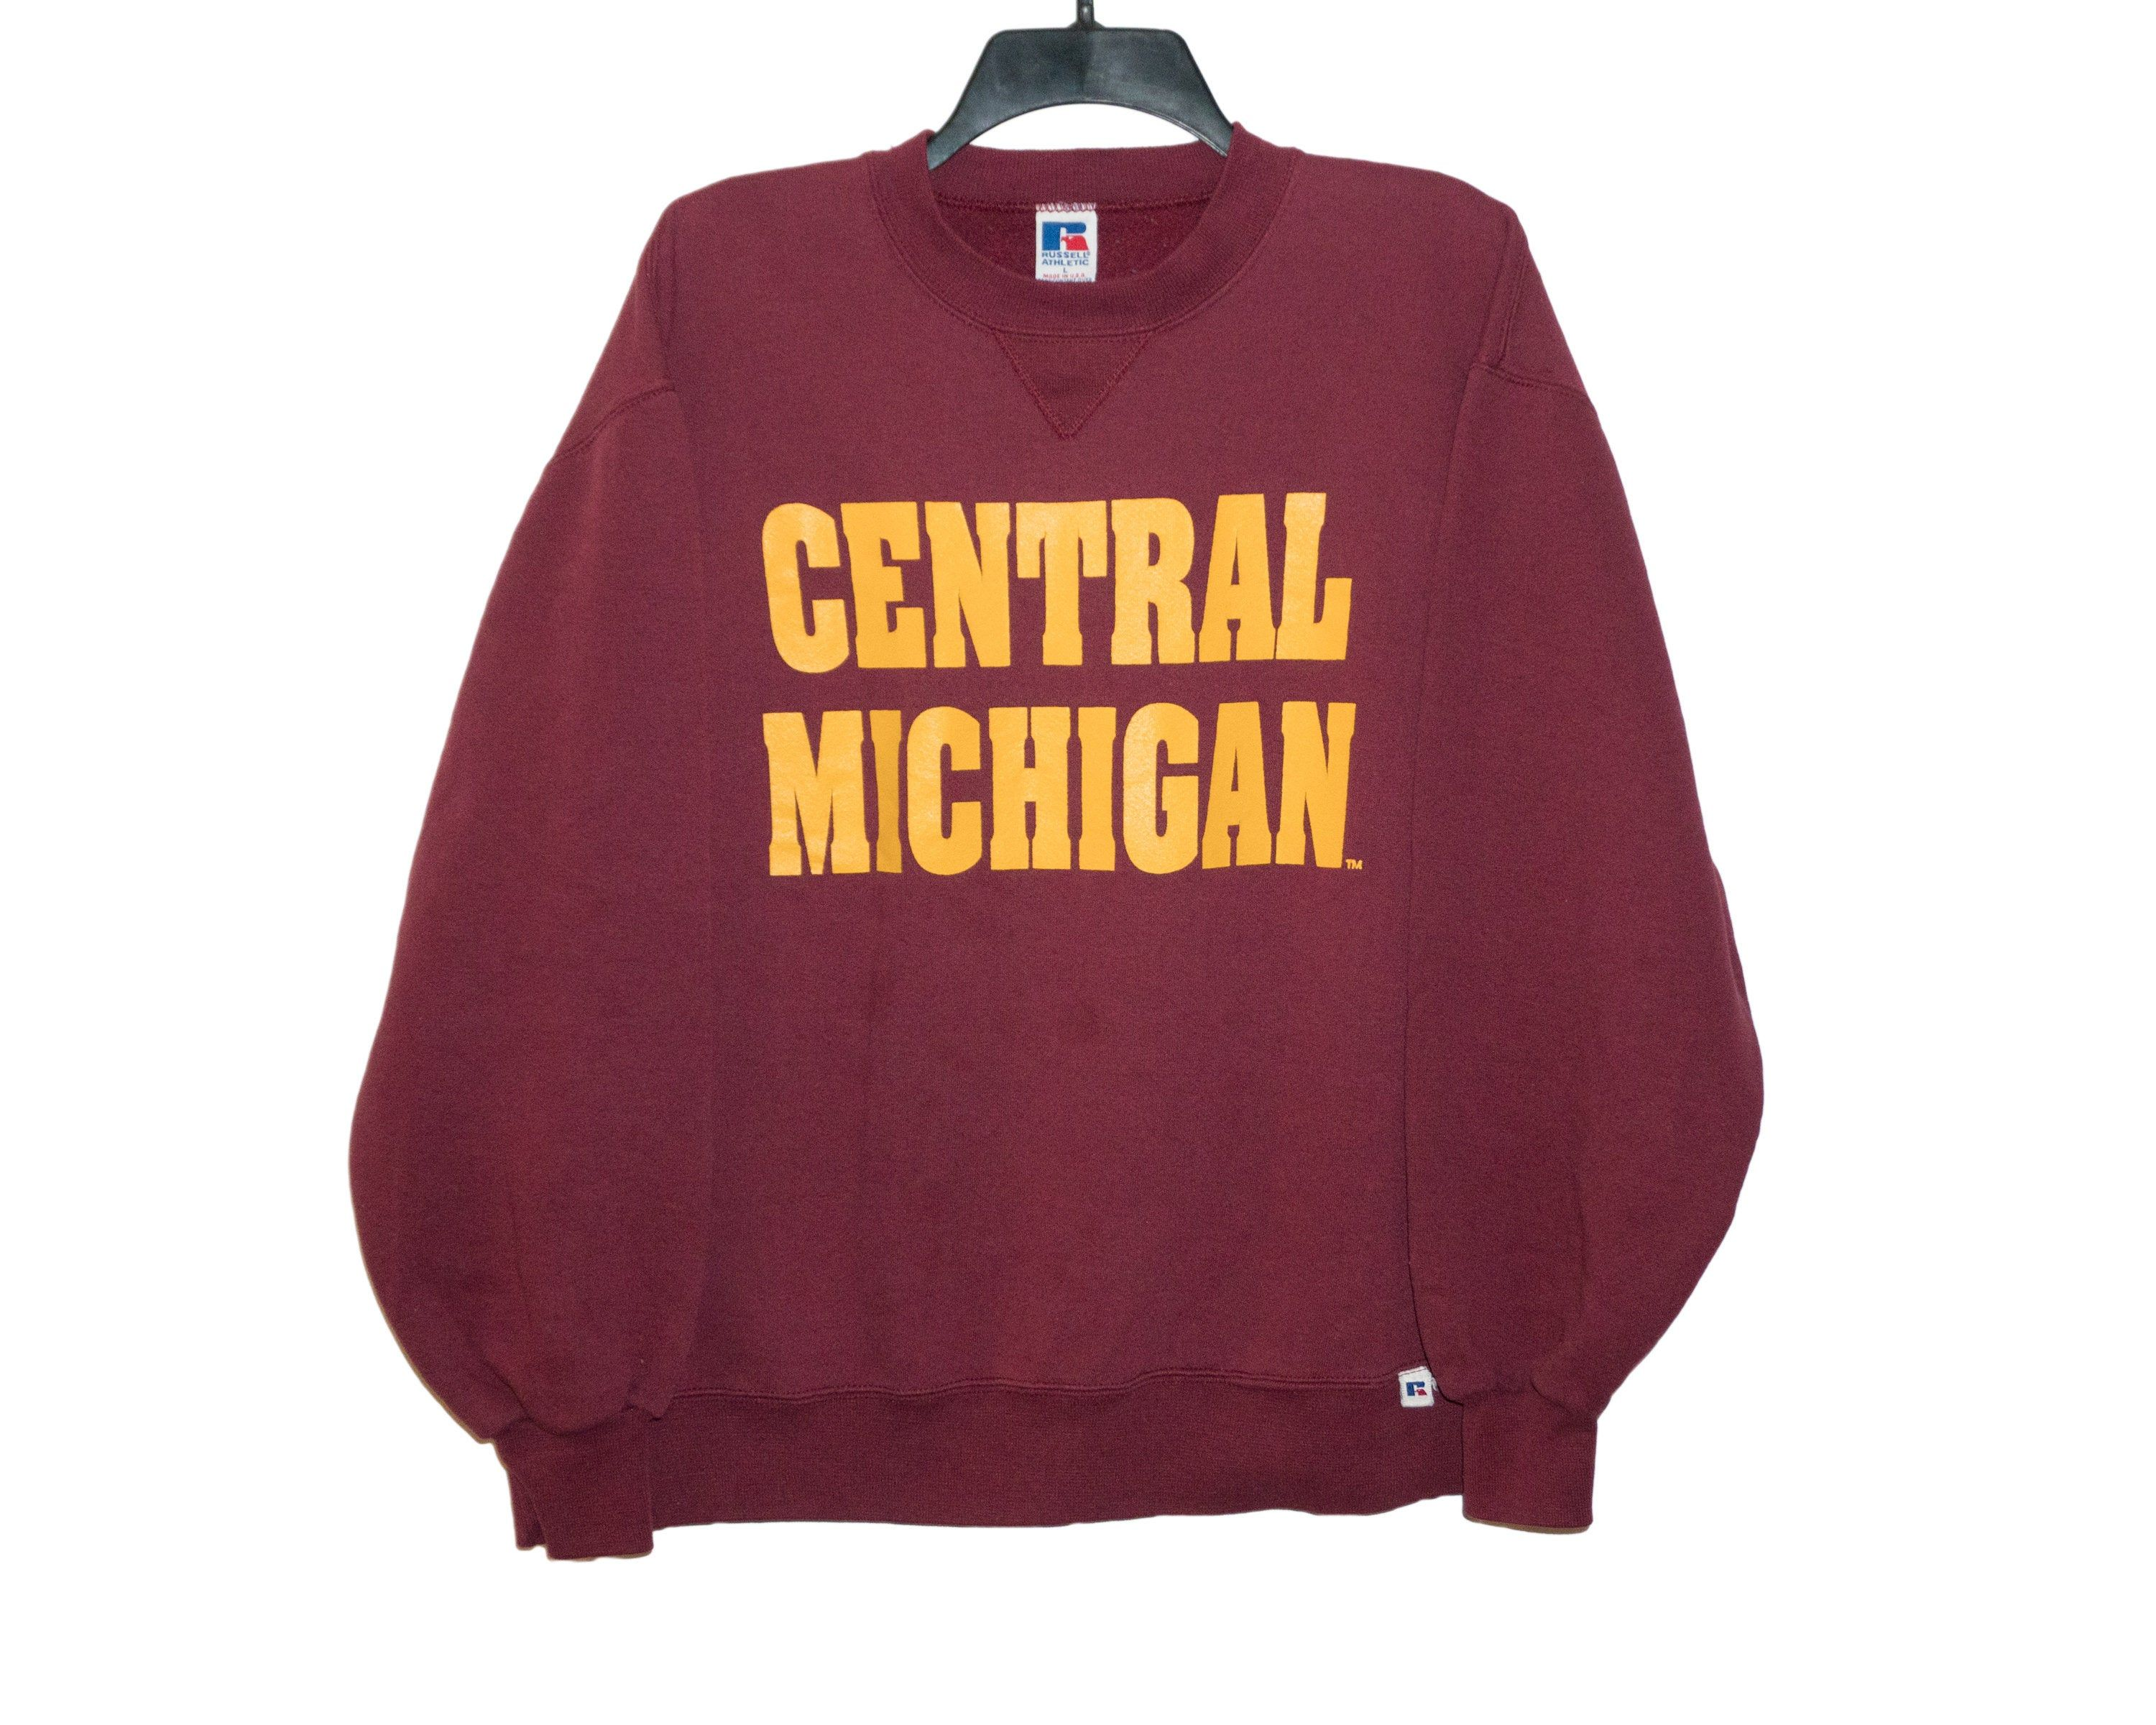 Vintage Central Michigan University Cmu Chippewas 80 S Russell Athletic Maroon And Gold Crewn Crew Neck Sweatshirt Central Michigan University Russell Athletic [ 2400 x 3000 Pixel ]